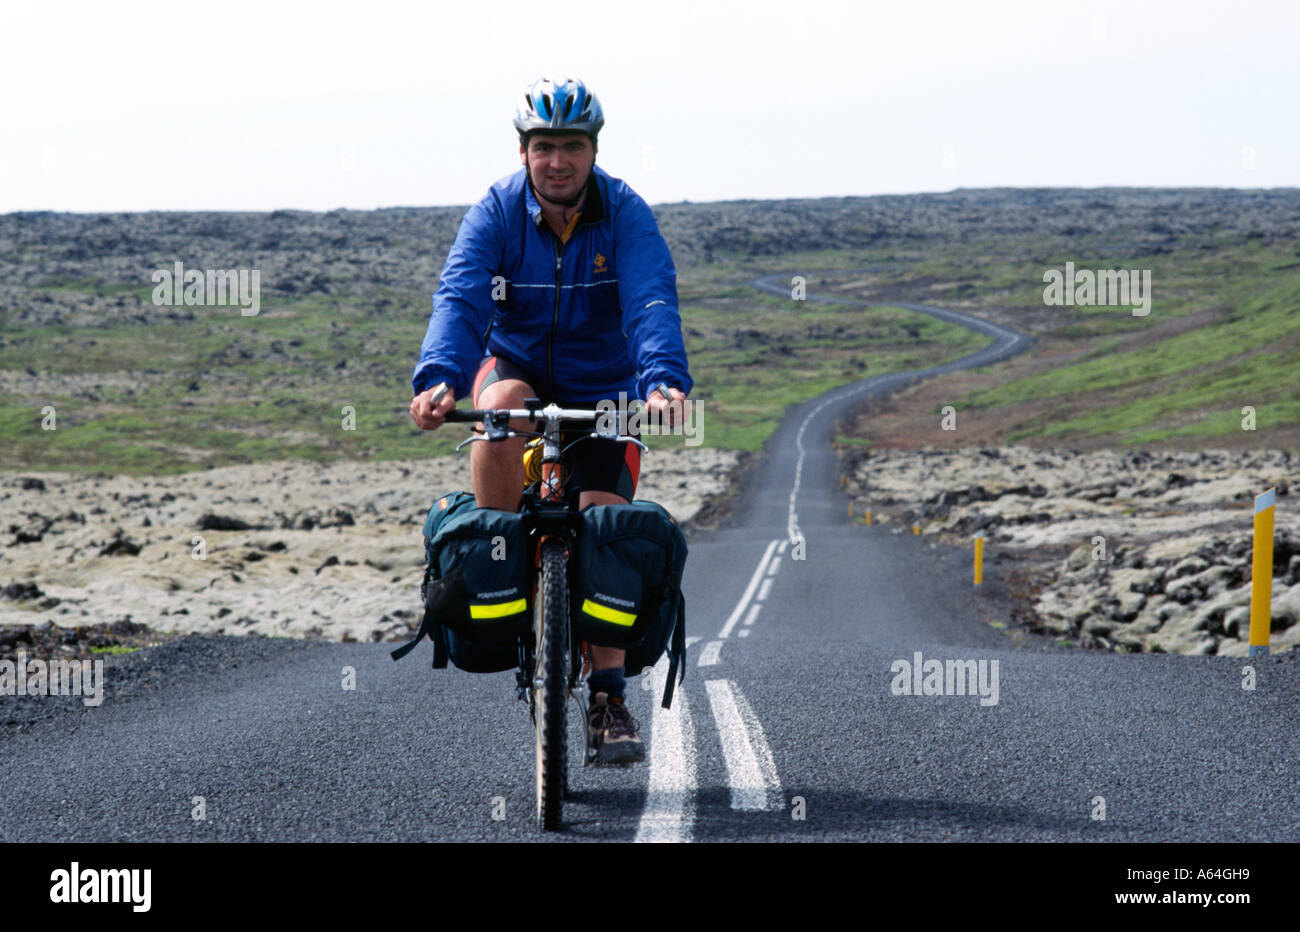 Carl Galvin Mountain Biking in Iceland during the Bike Iceland Mountain Biking Exprdition - Stock Image